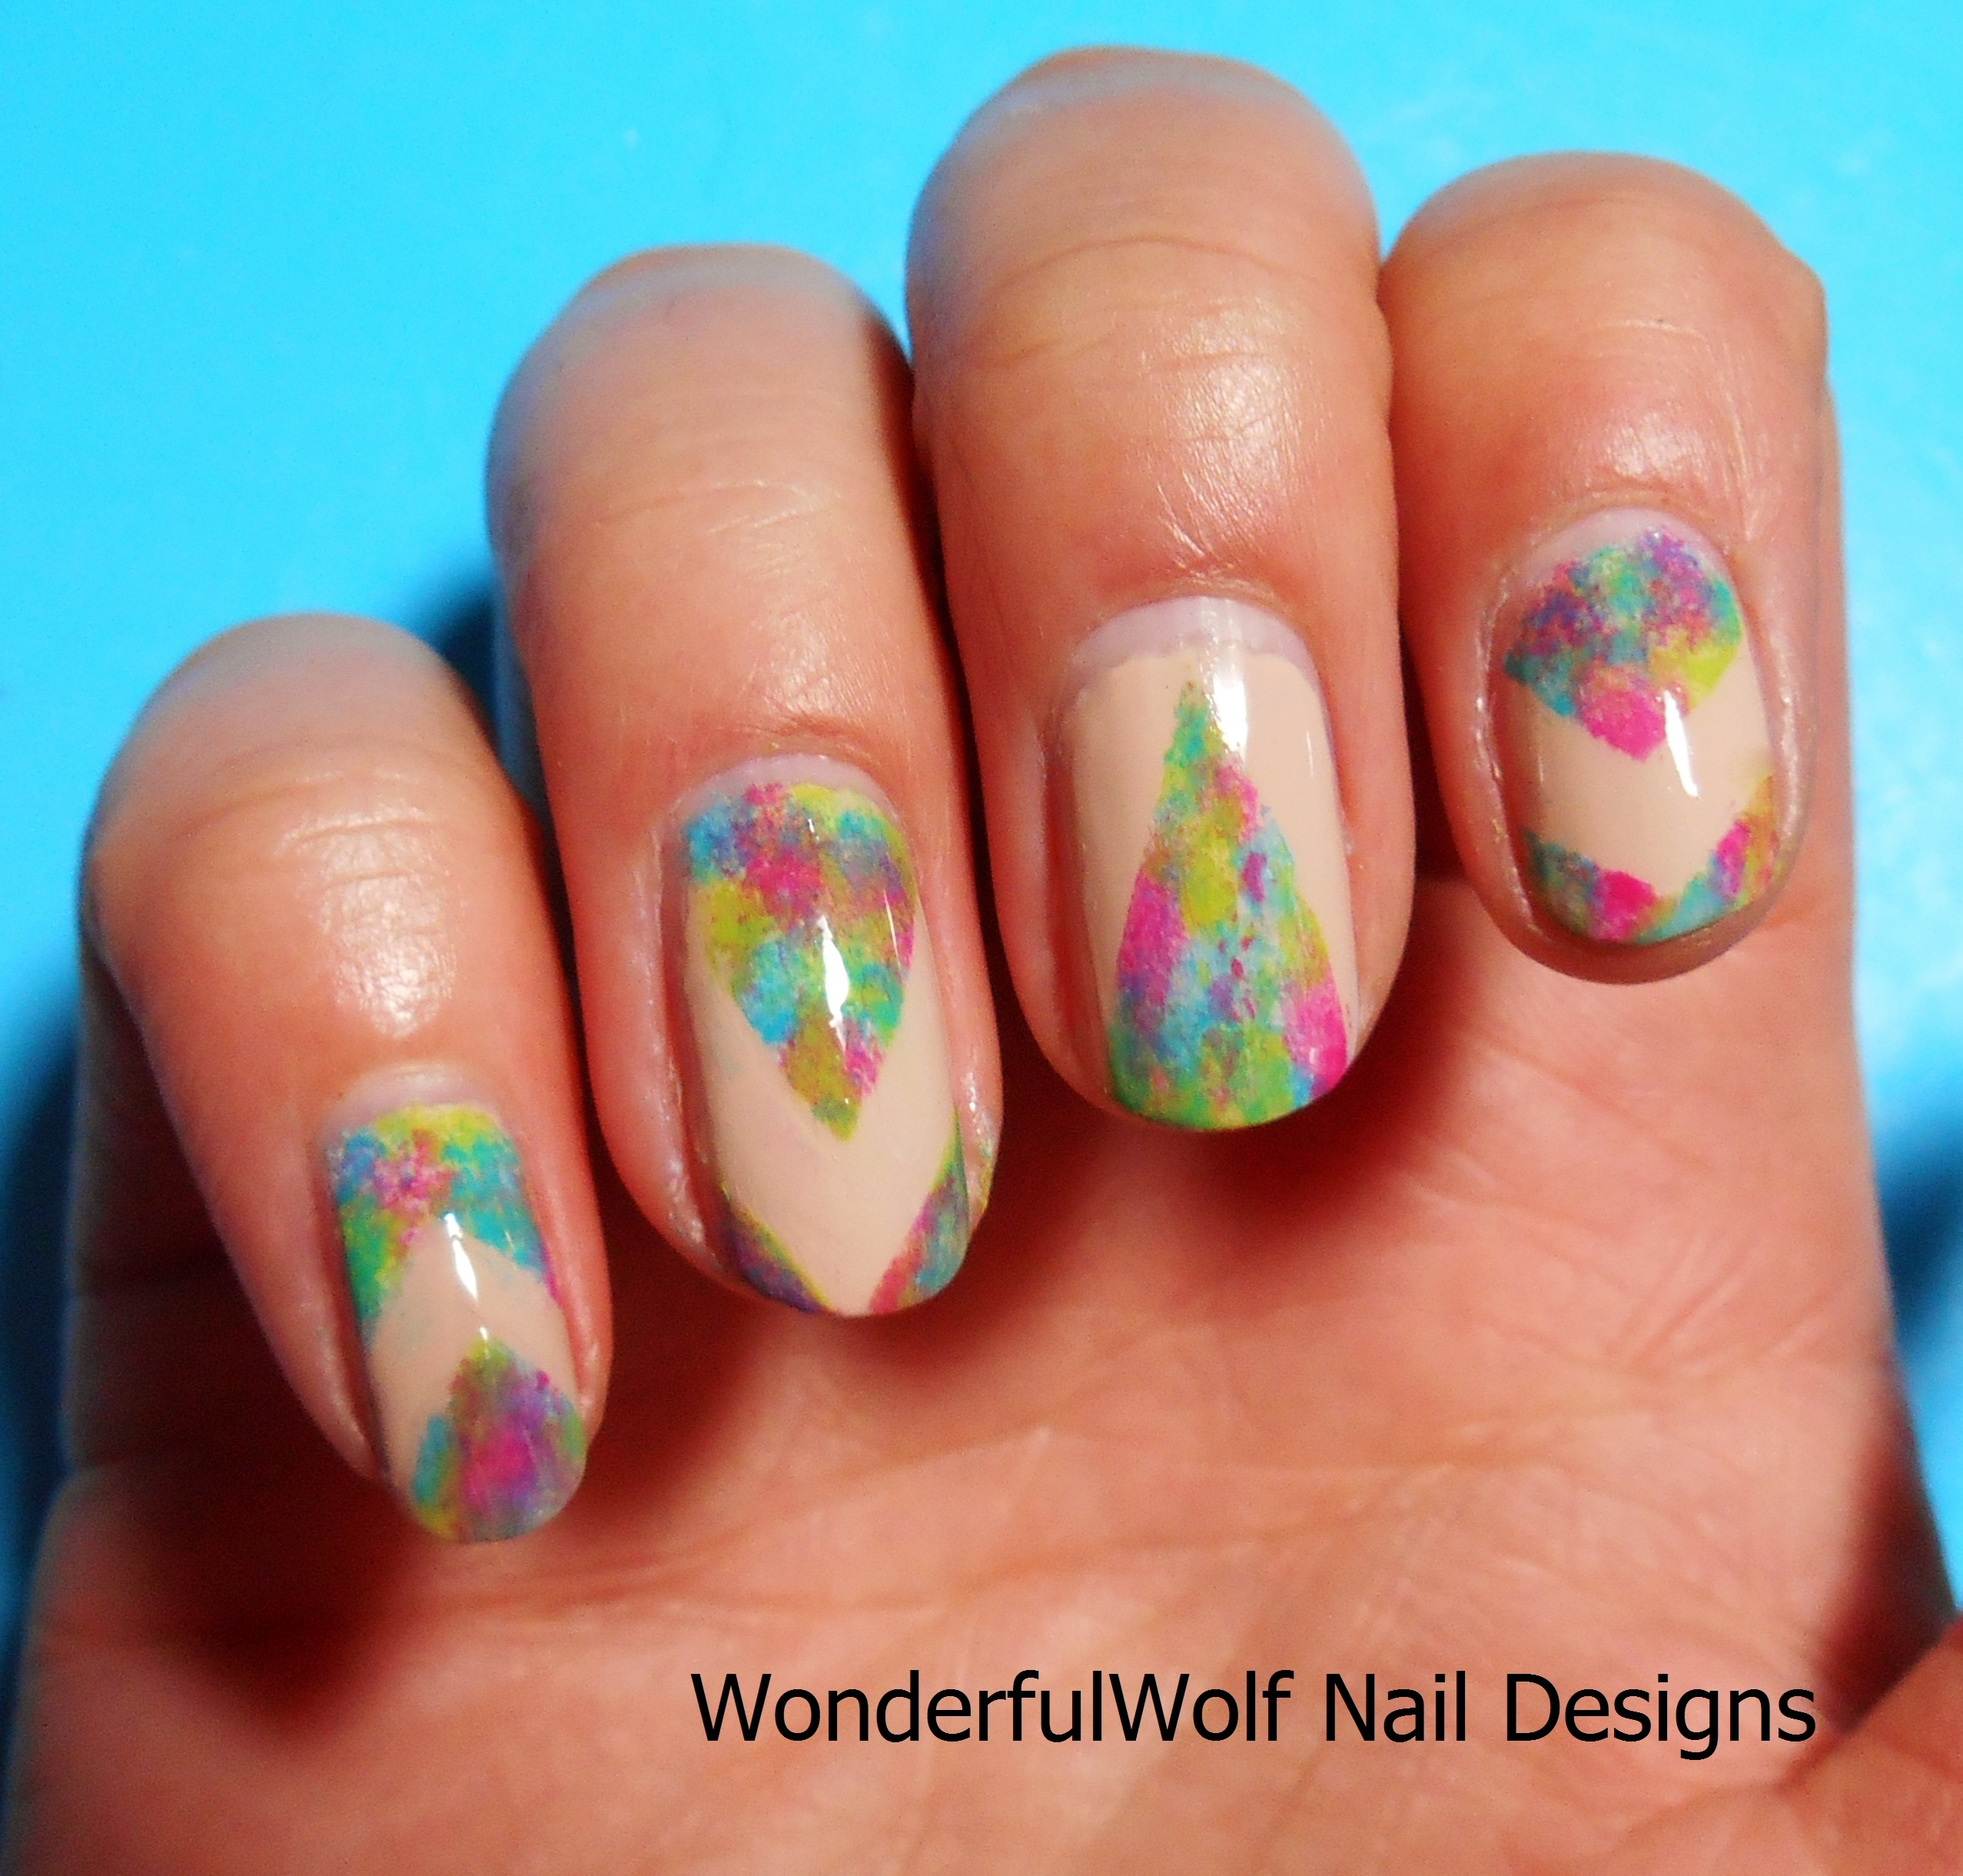 Festival nail art wonderfulwolf summer sponging nail art prinsesfo Image collections